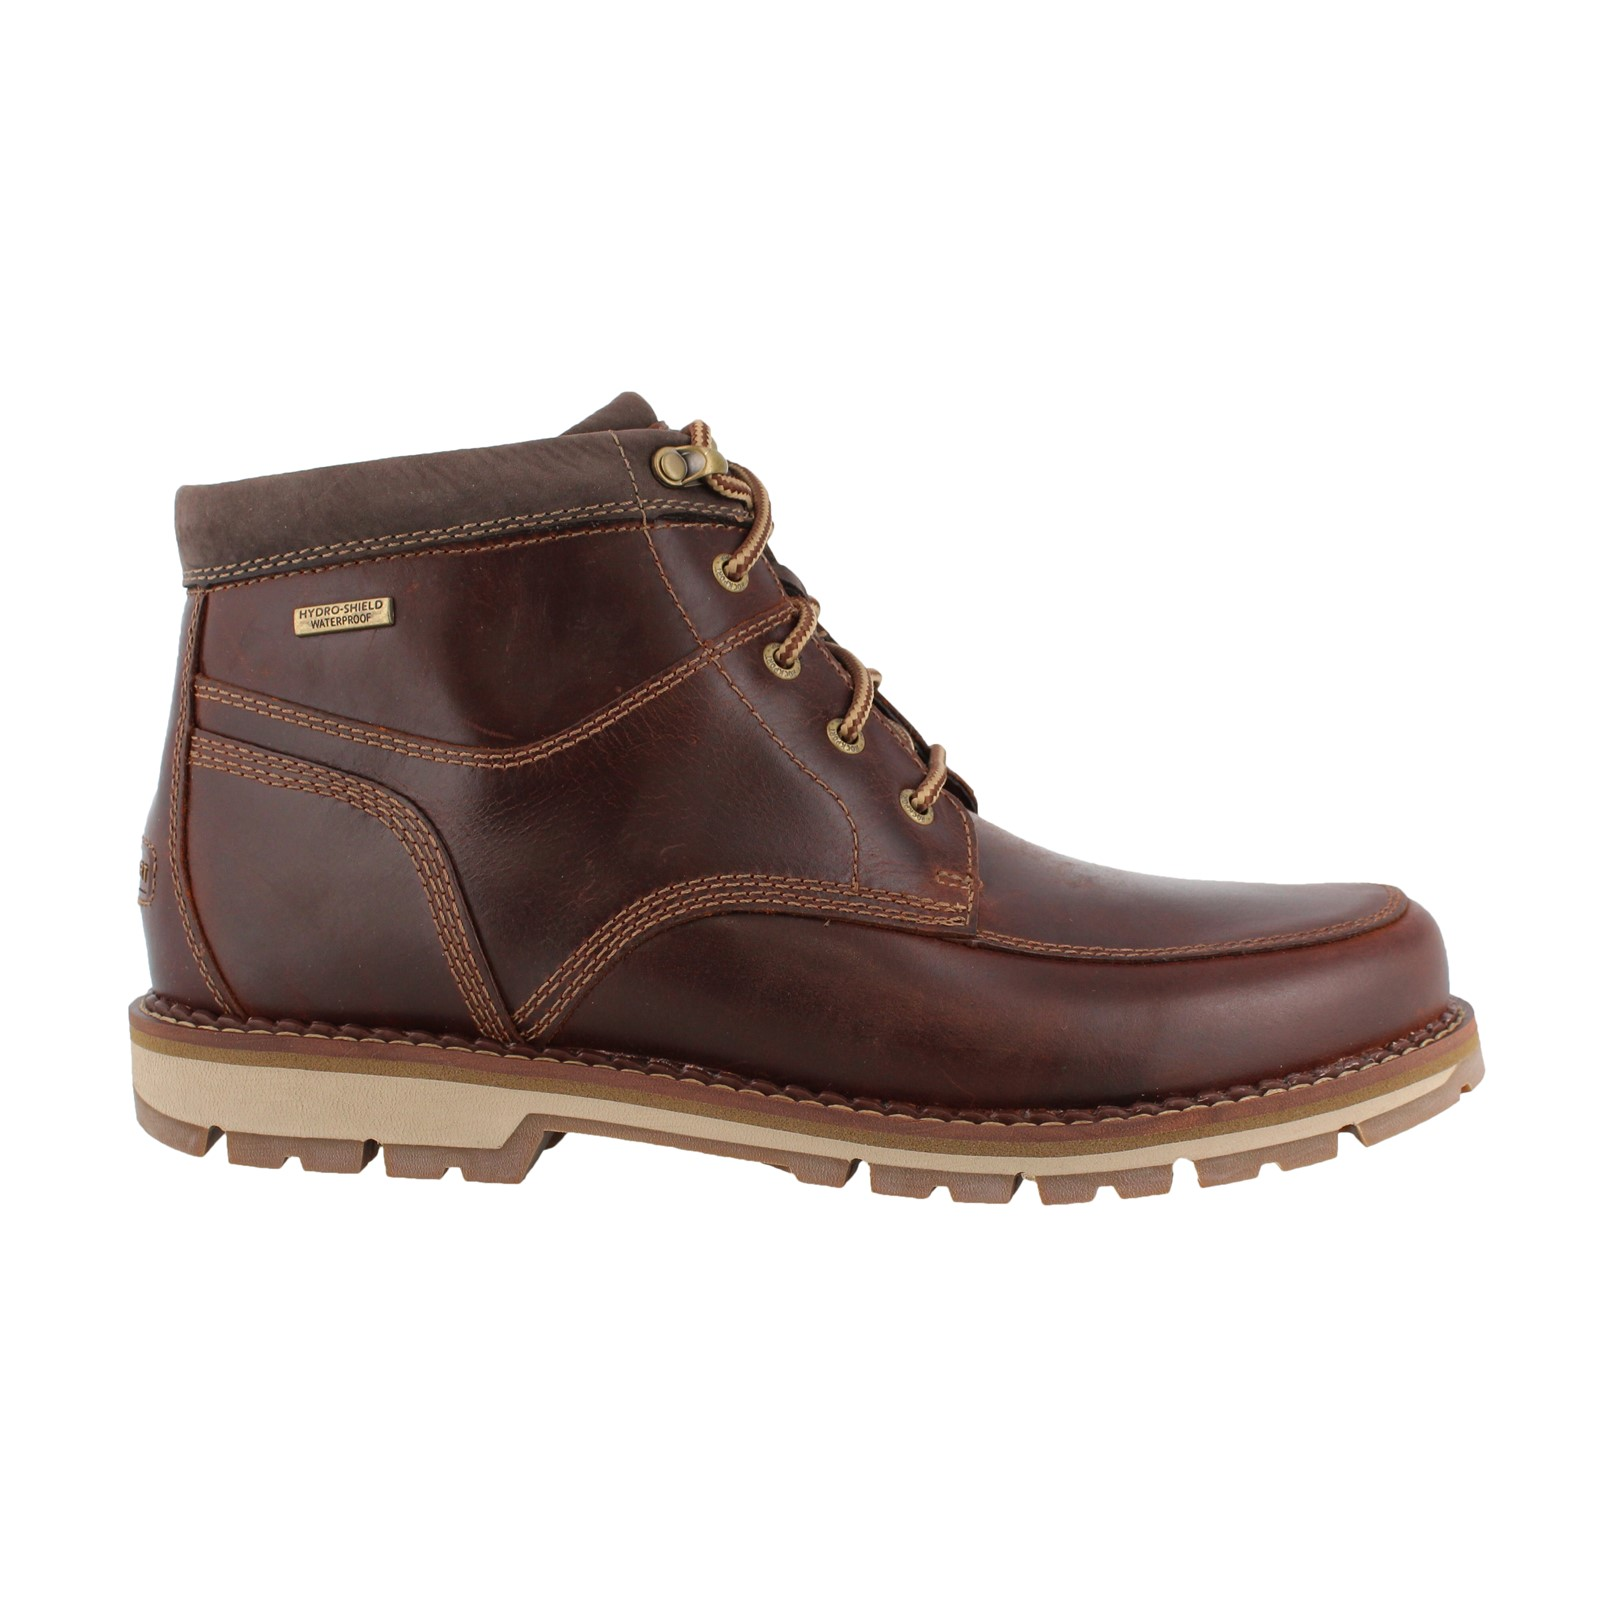 Men's Rockport, Centry Panel Toe Boots